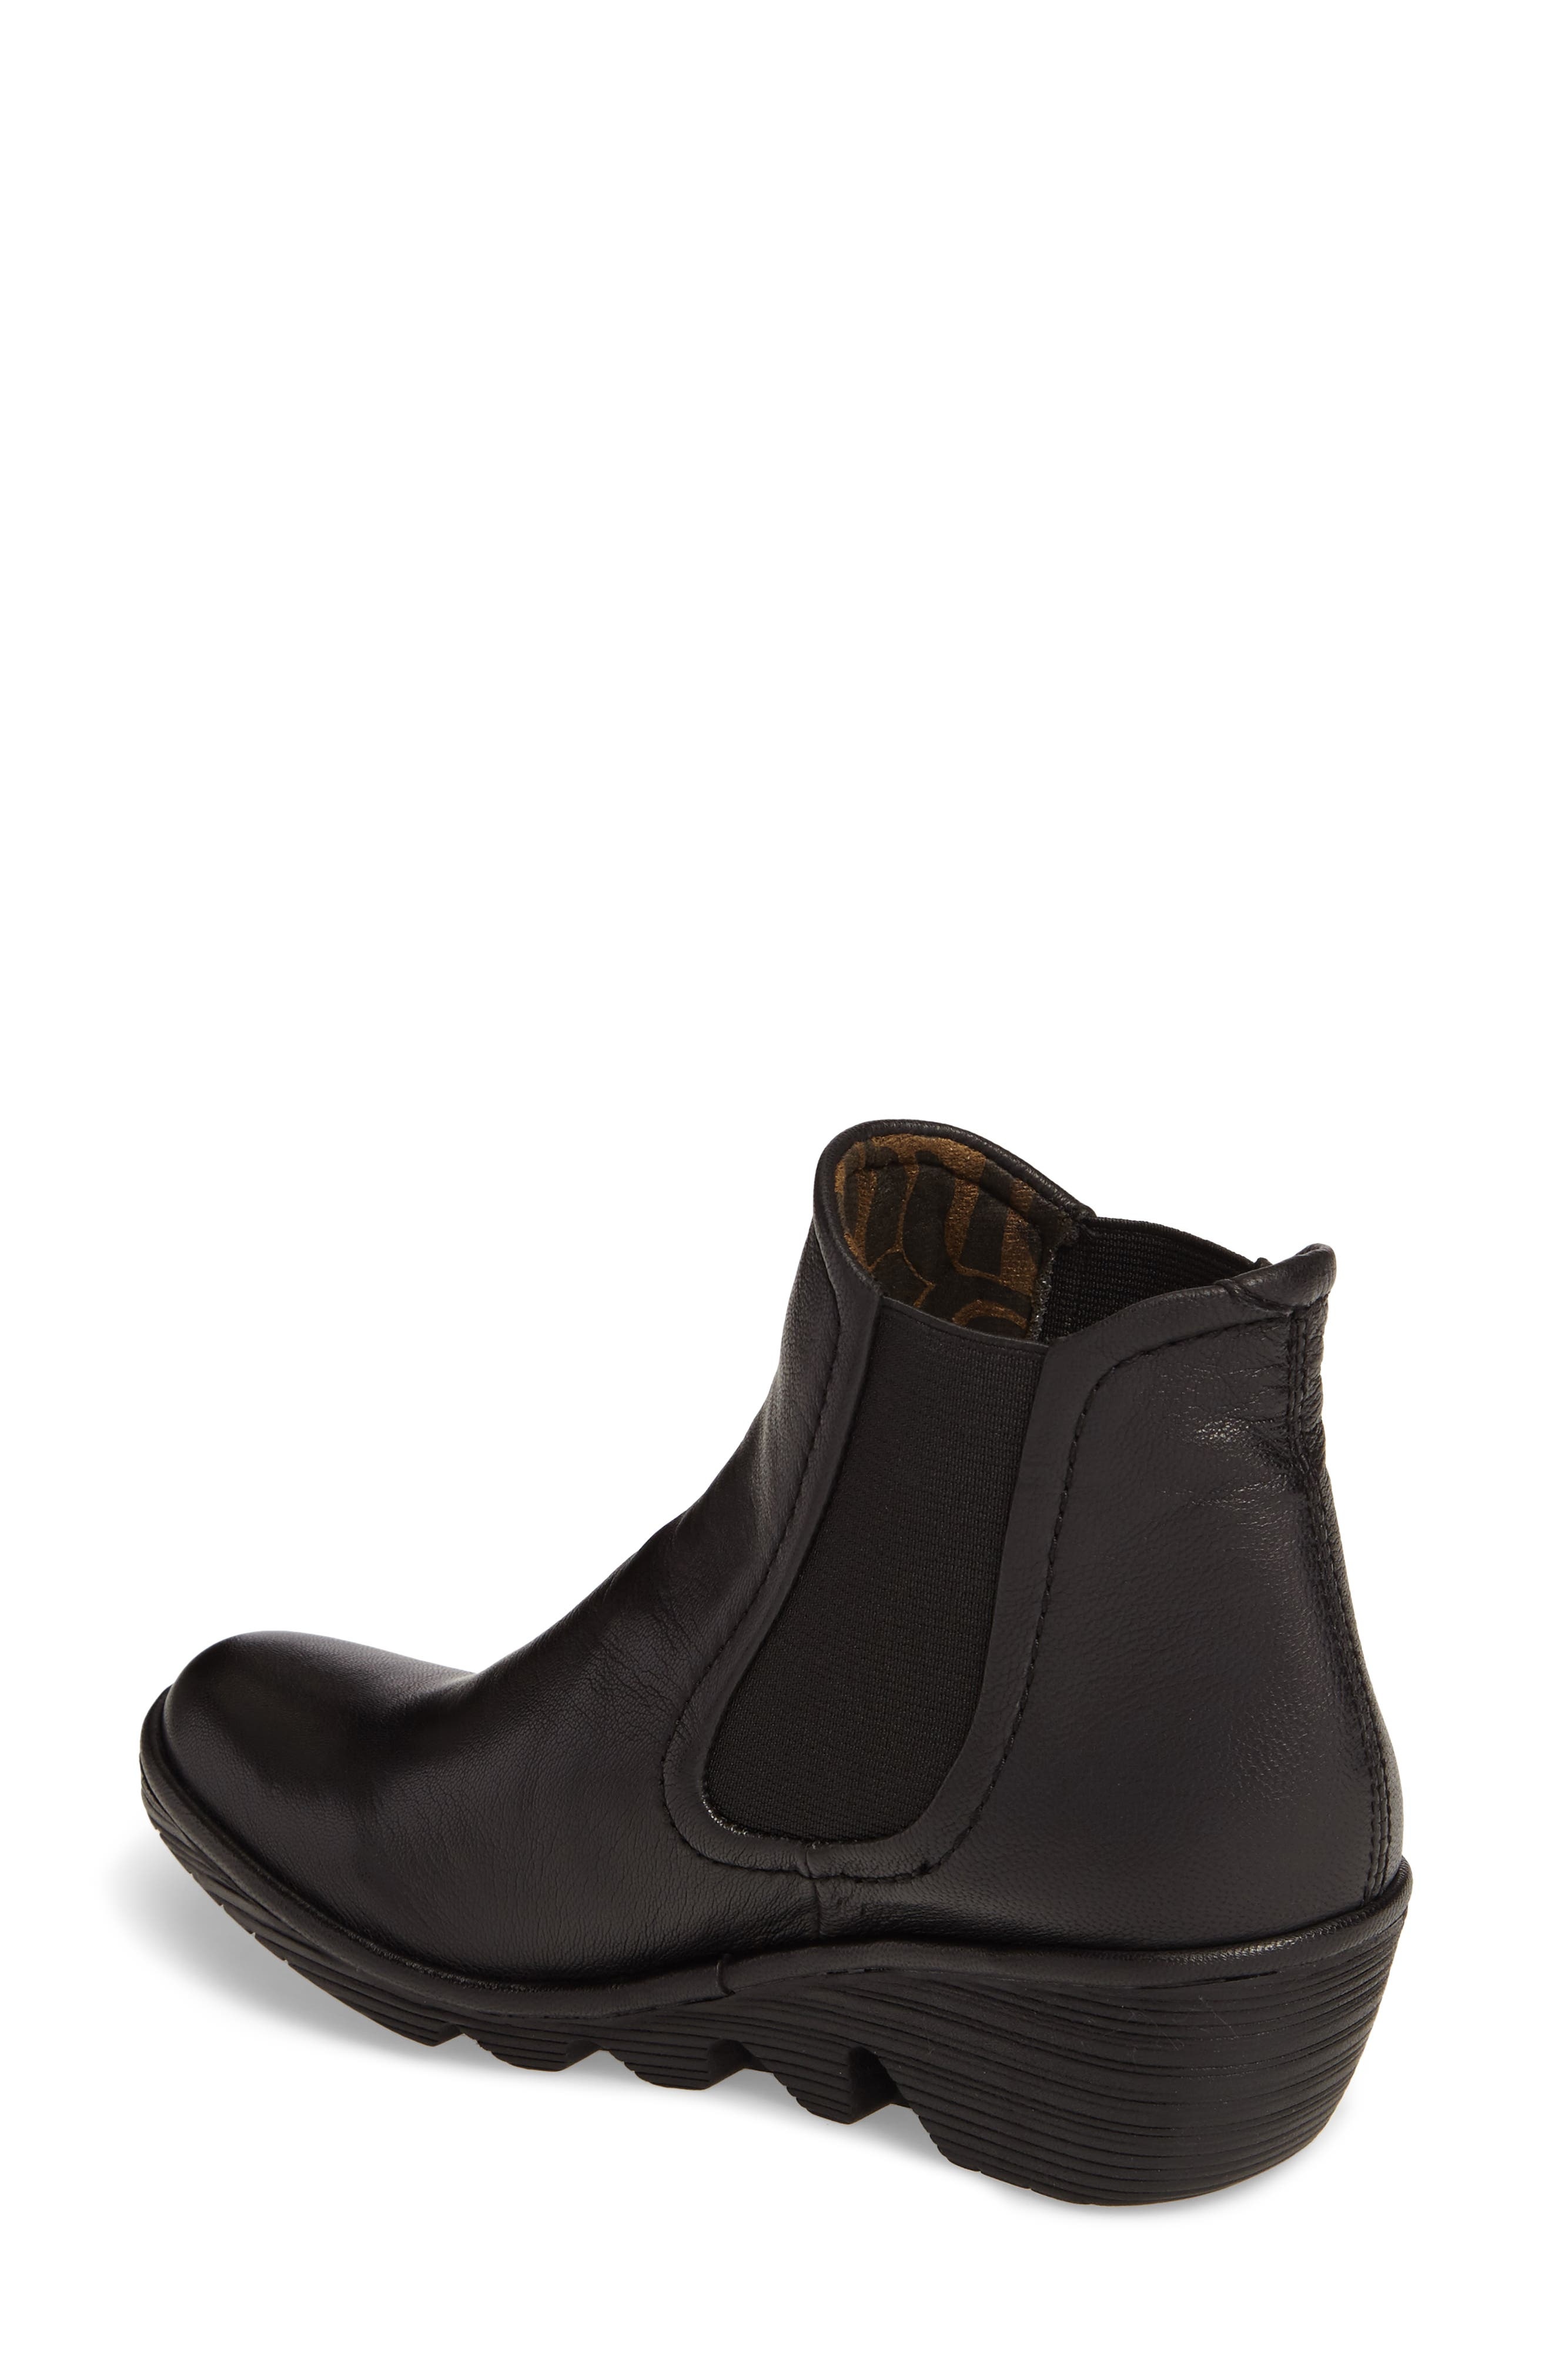 'Phil' Chelsea Boot,                             Alternate thumbnail 7, color,